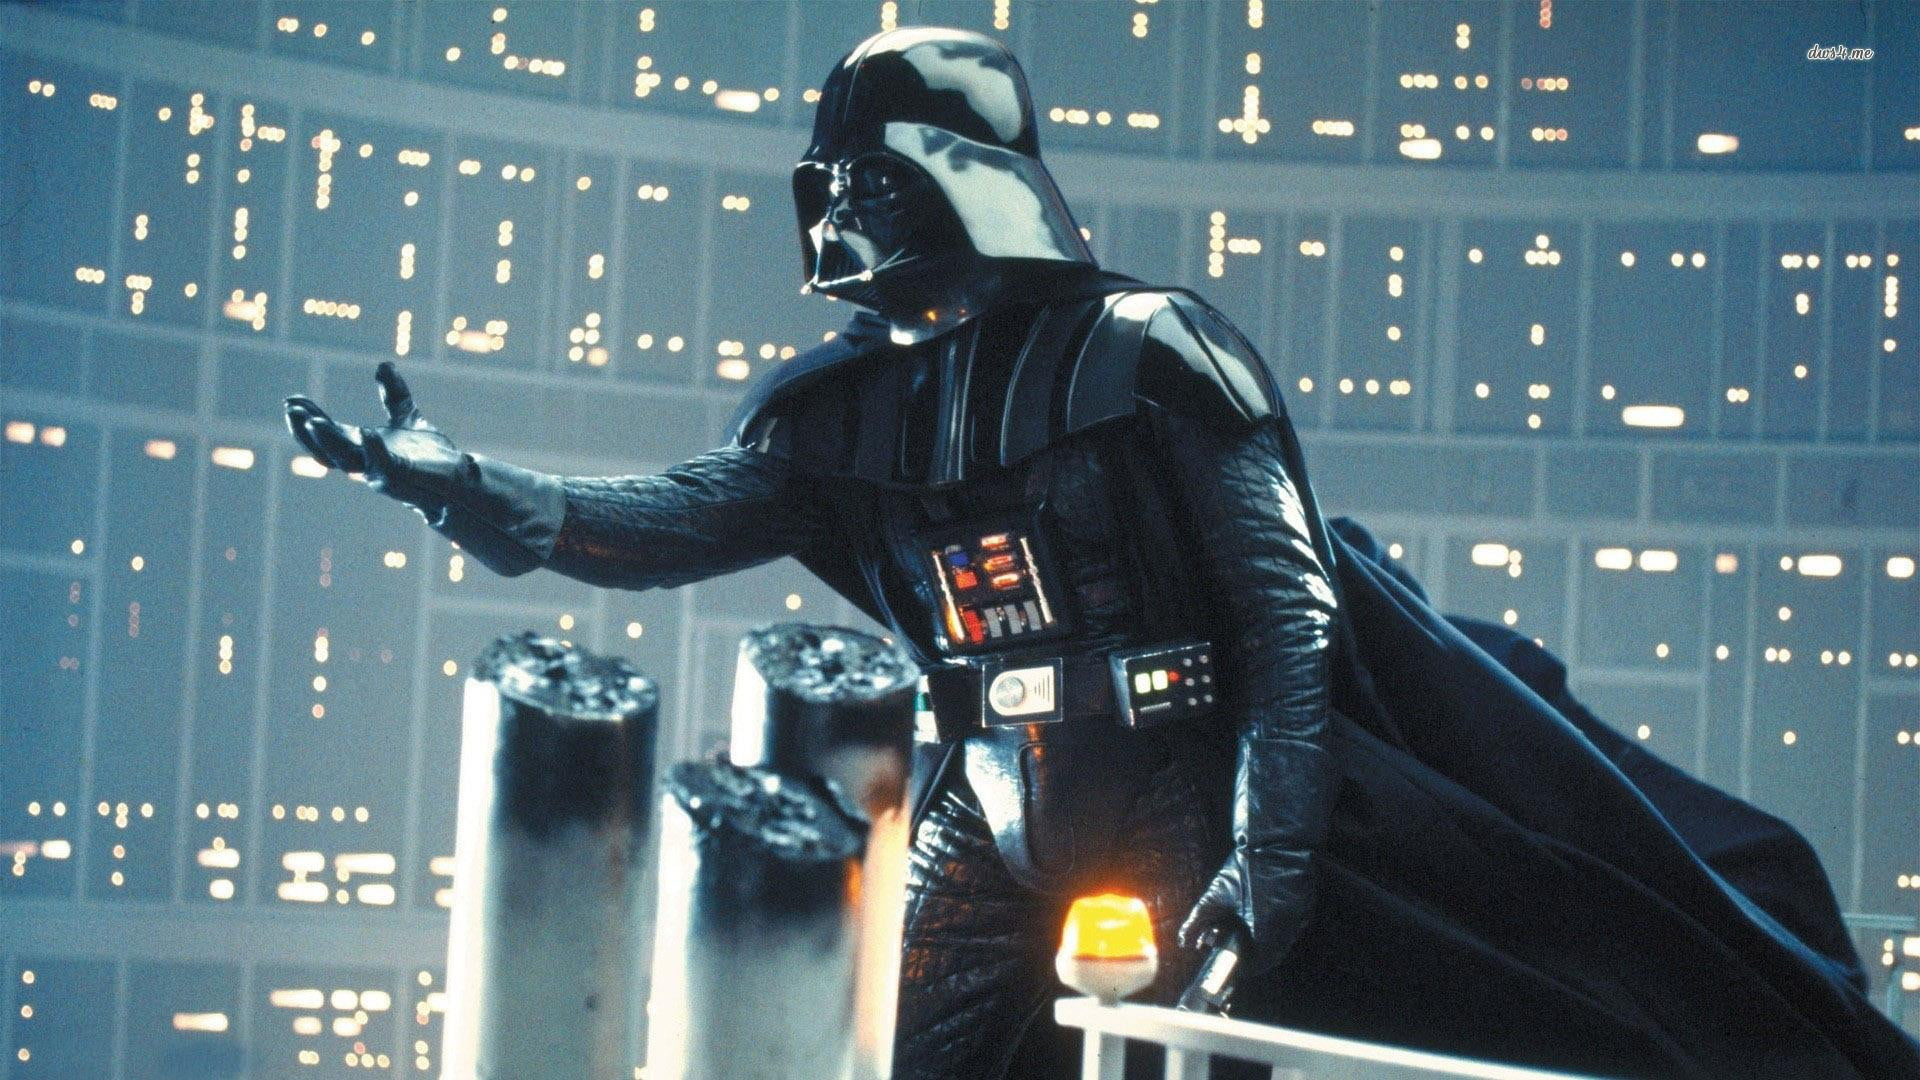 Here's the Best Order To Watch The Star Wars Movies